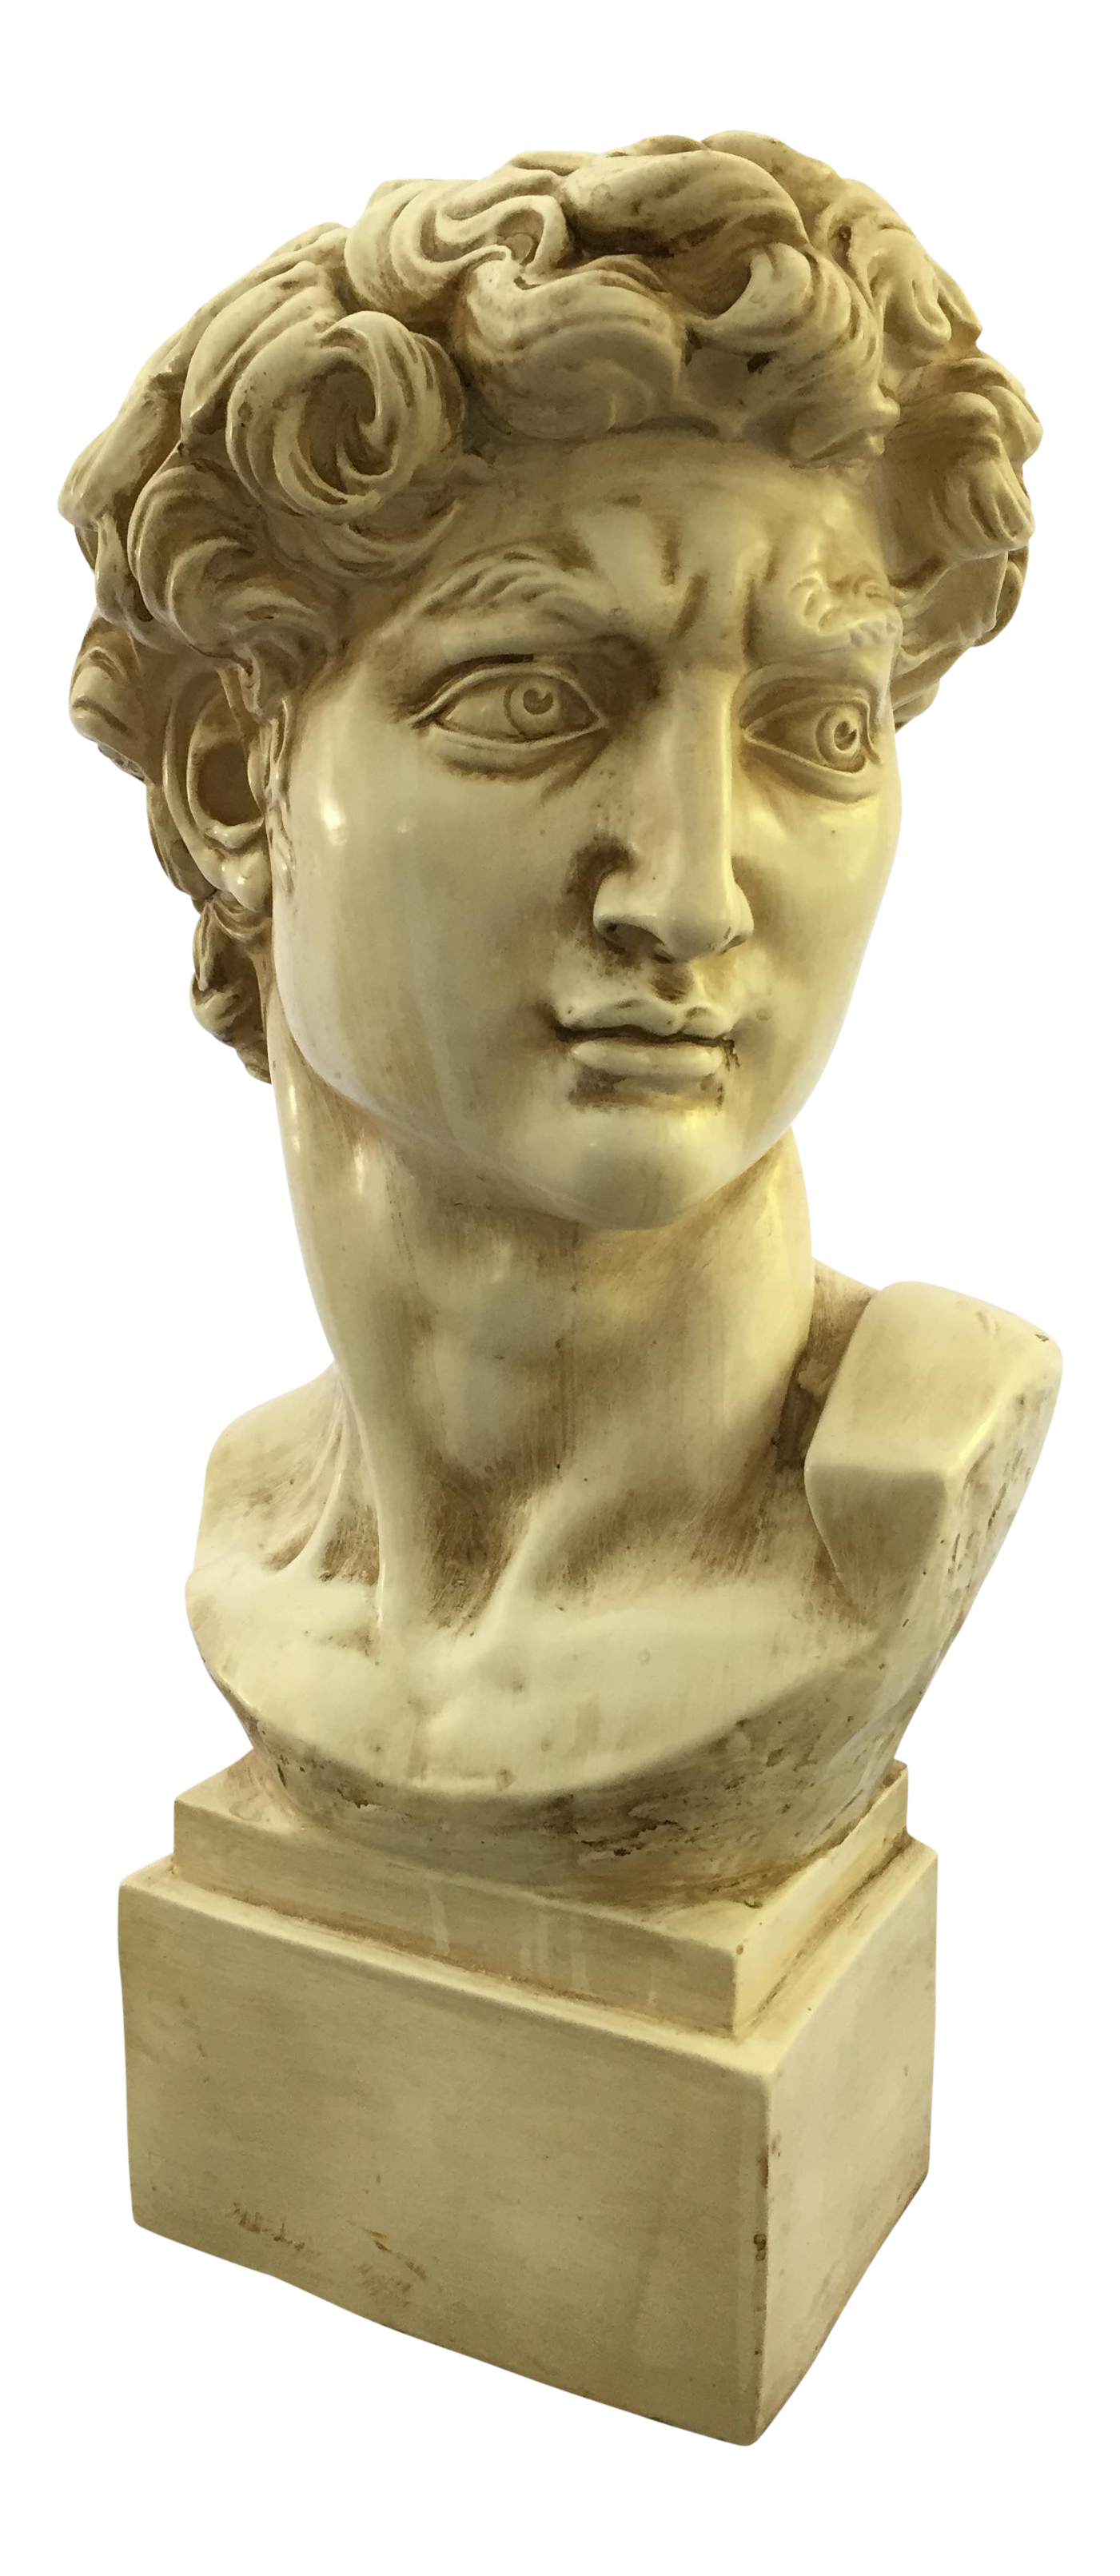 Statue bust png. David sculpture chairish